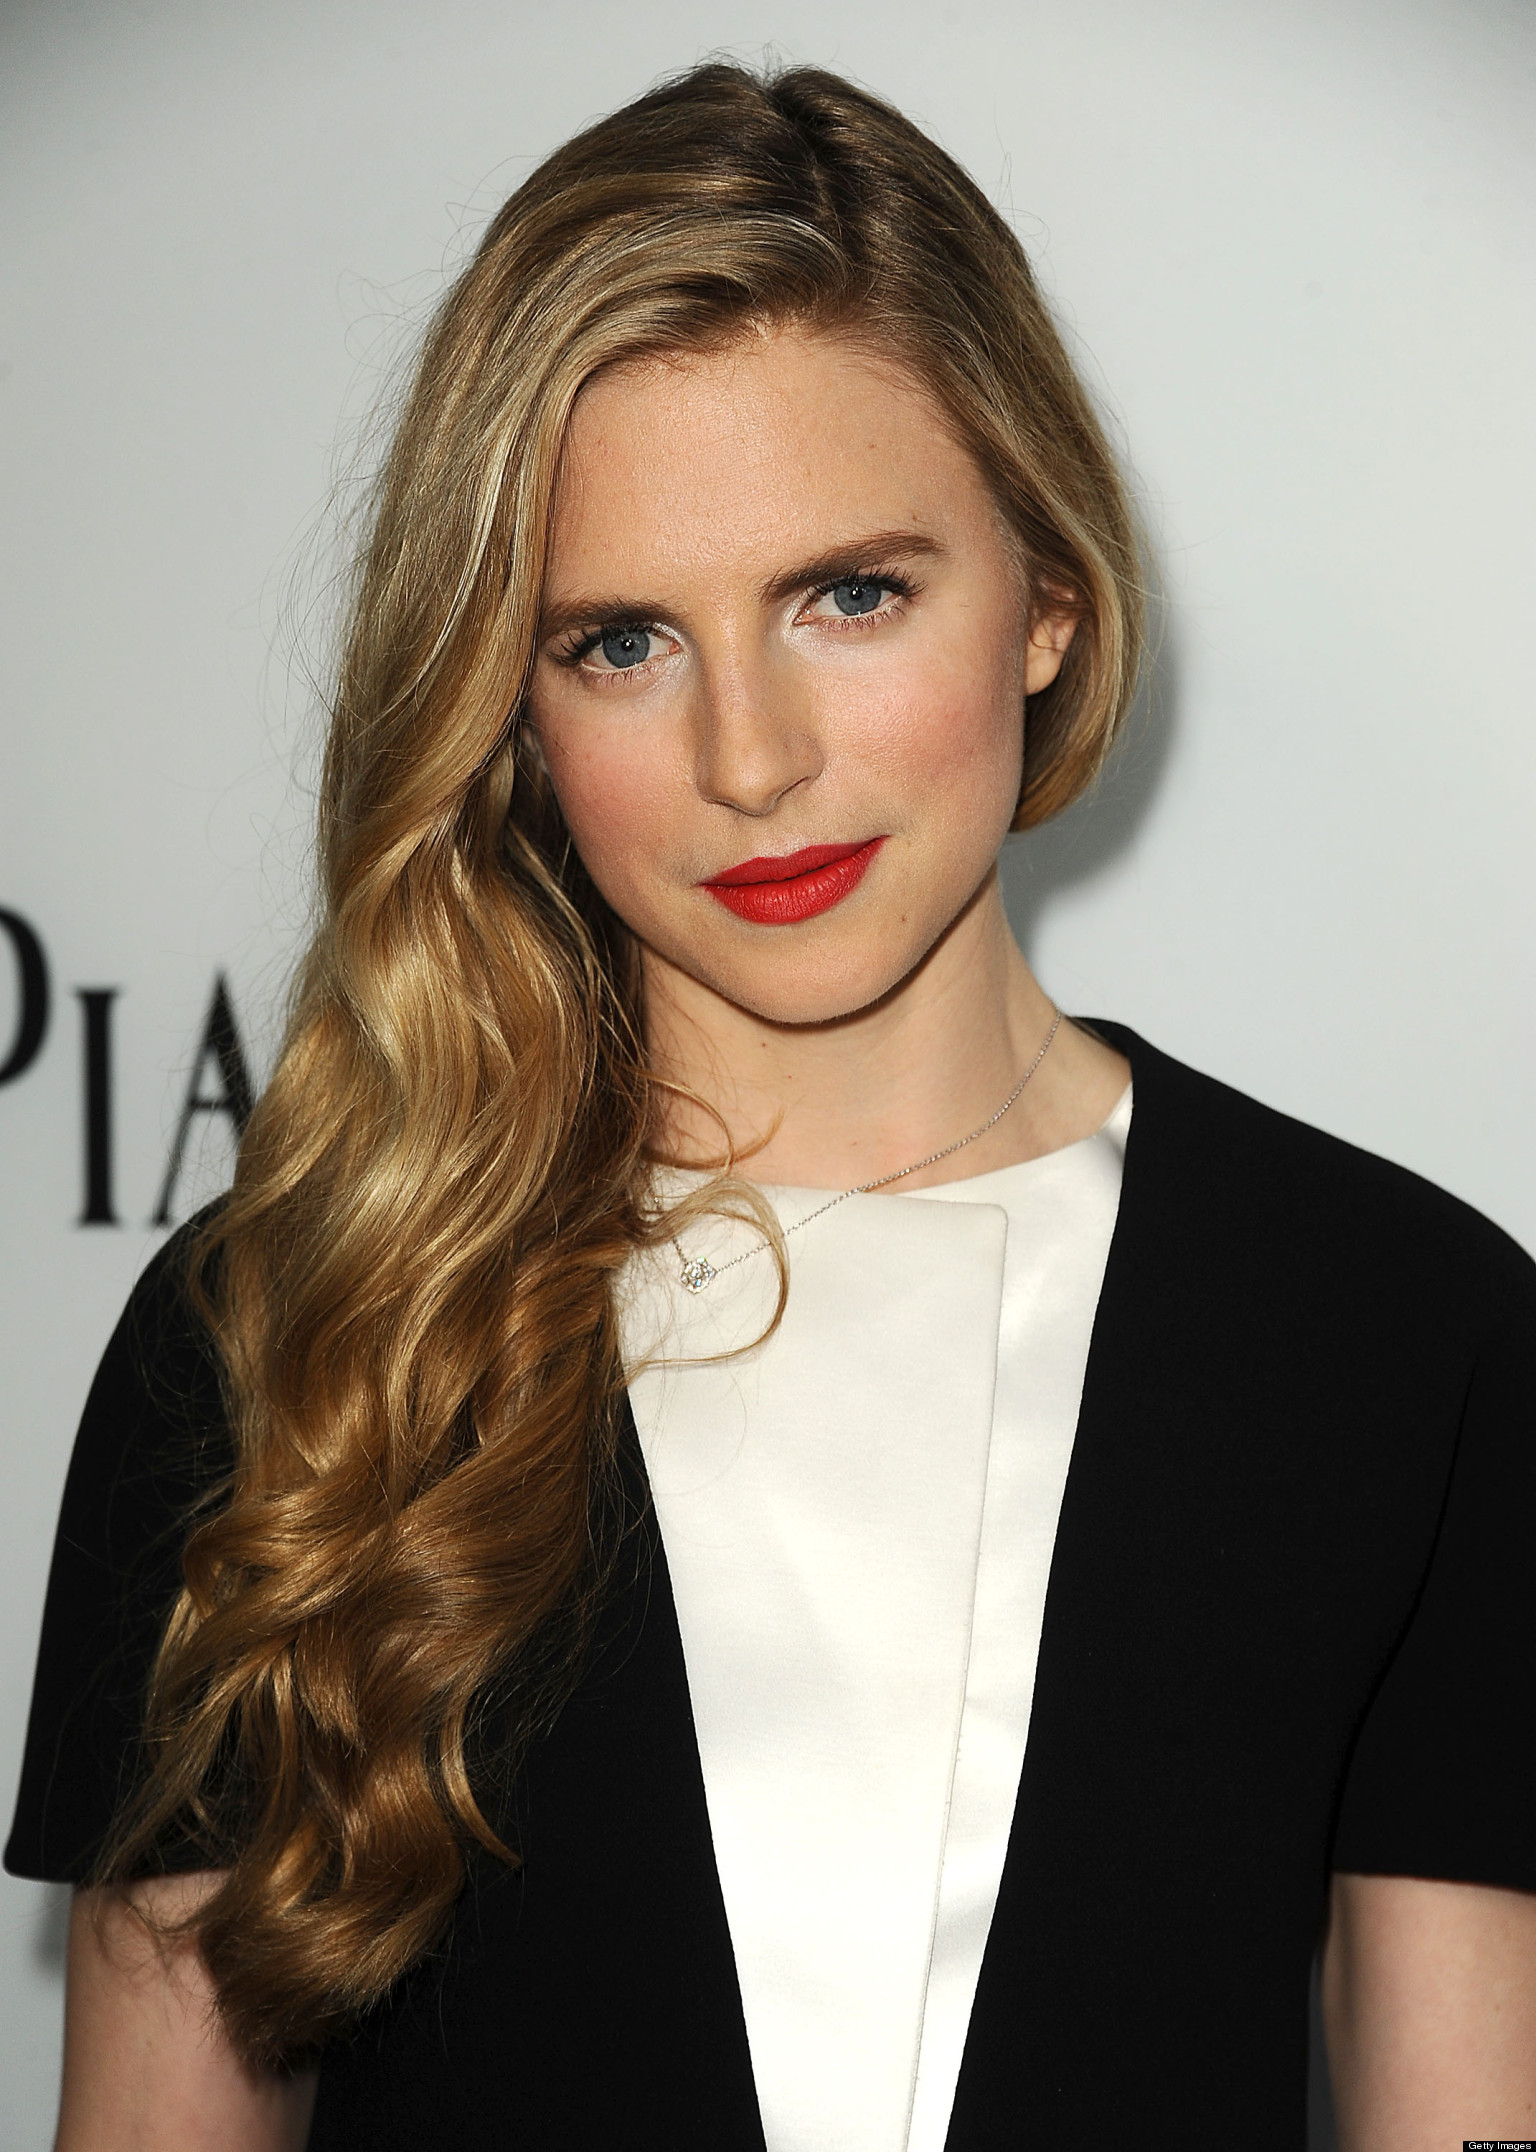 Brit Marling The East Star May Start Doing More